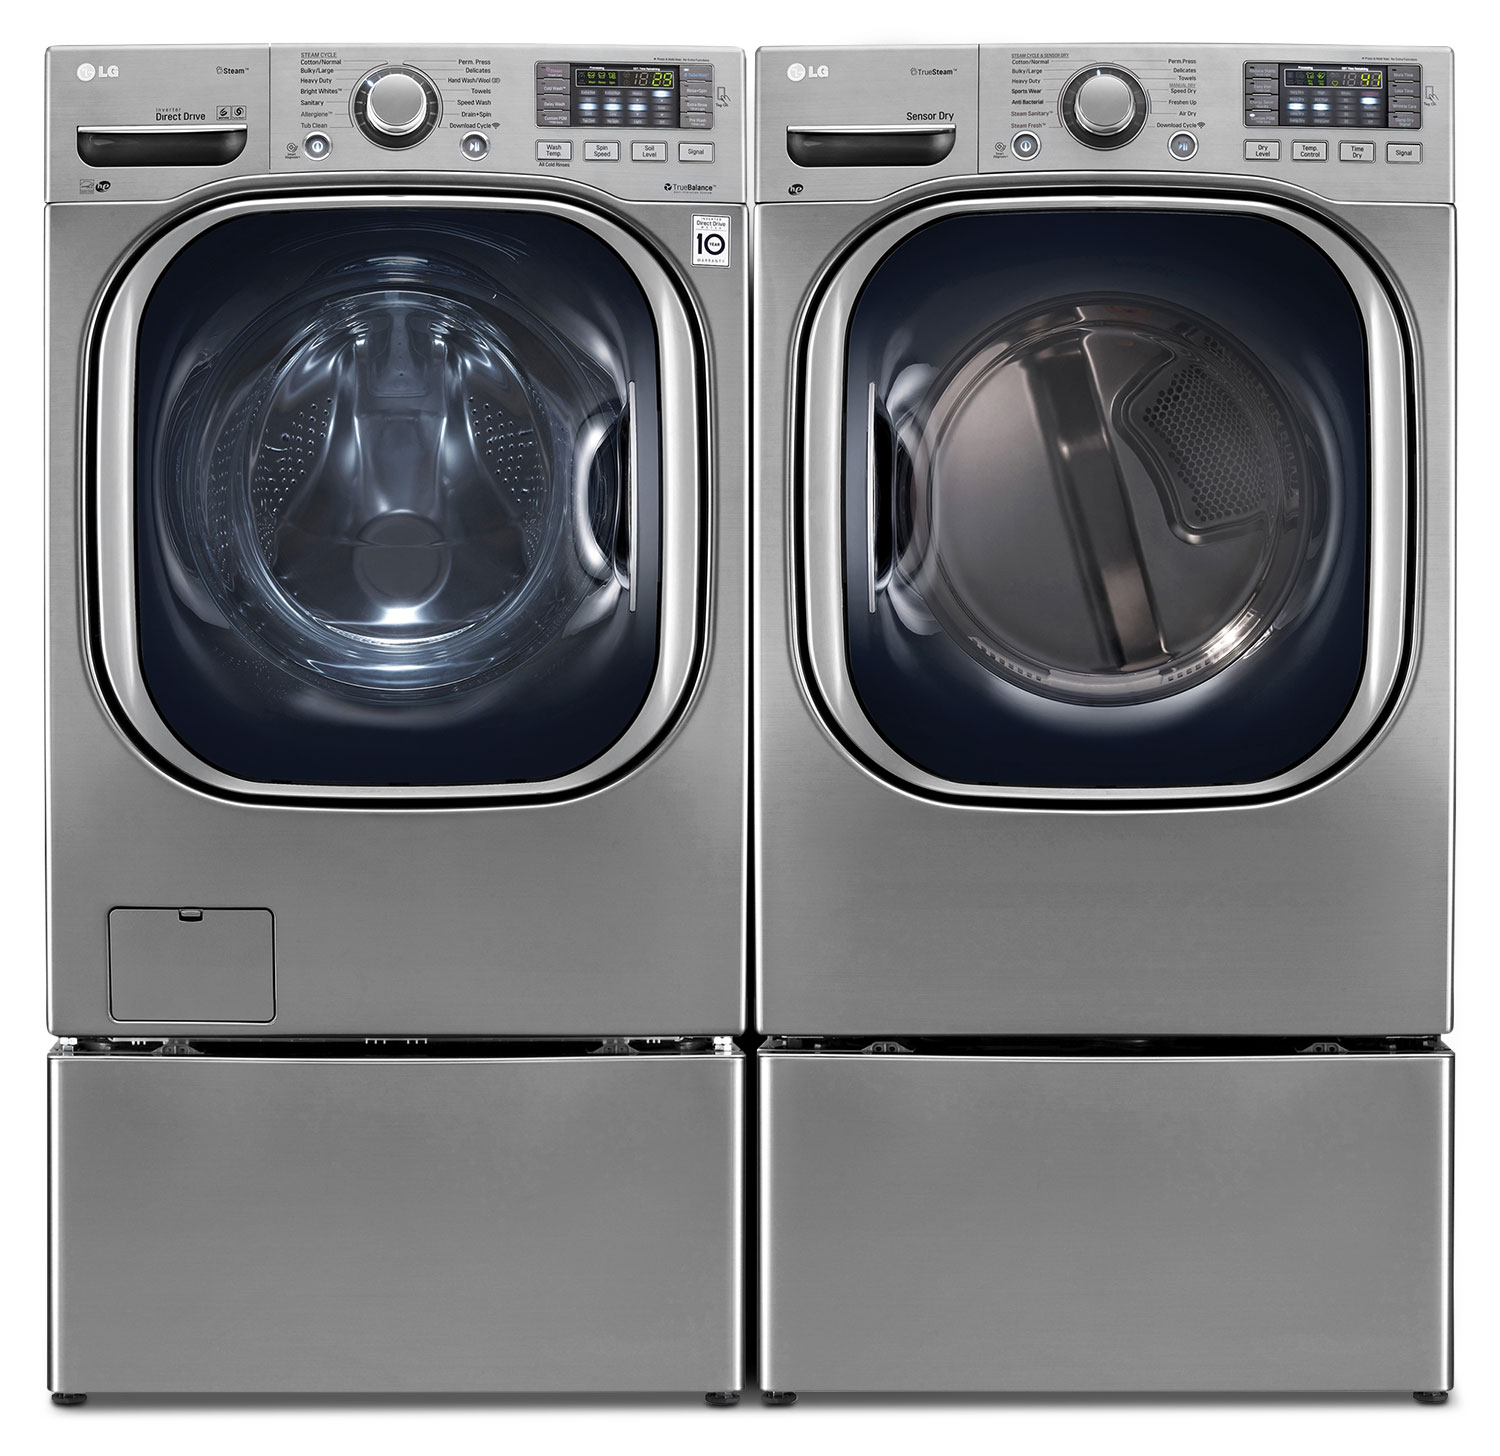 Washers and Dryers - LG TWIN Wash™ 5.2 Cu. Ft. Washer, SideKick™ Pedestal Washer, 7.4 Cu. Ft. Dryer and Storage Pedestal